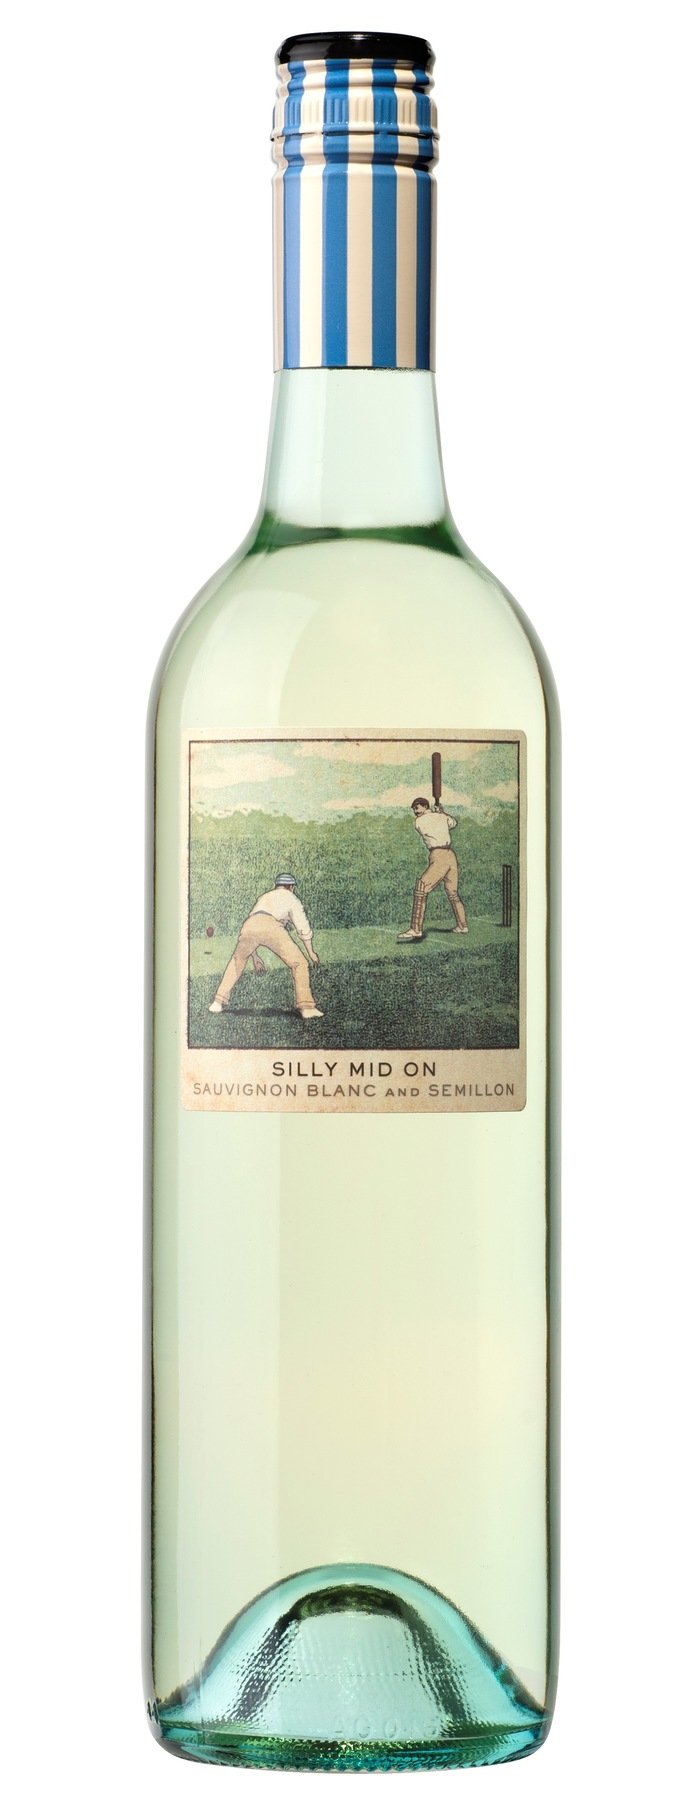 Jim Barry Wines: Cover Drive and Silly Mid On 3